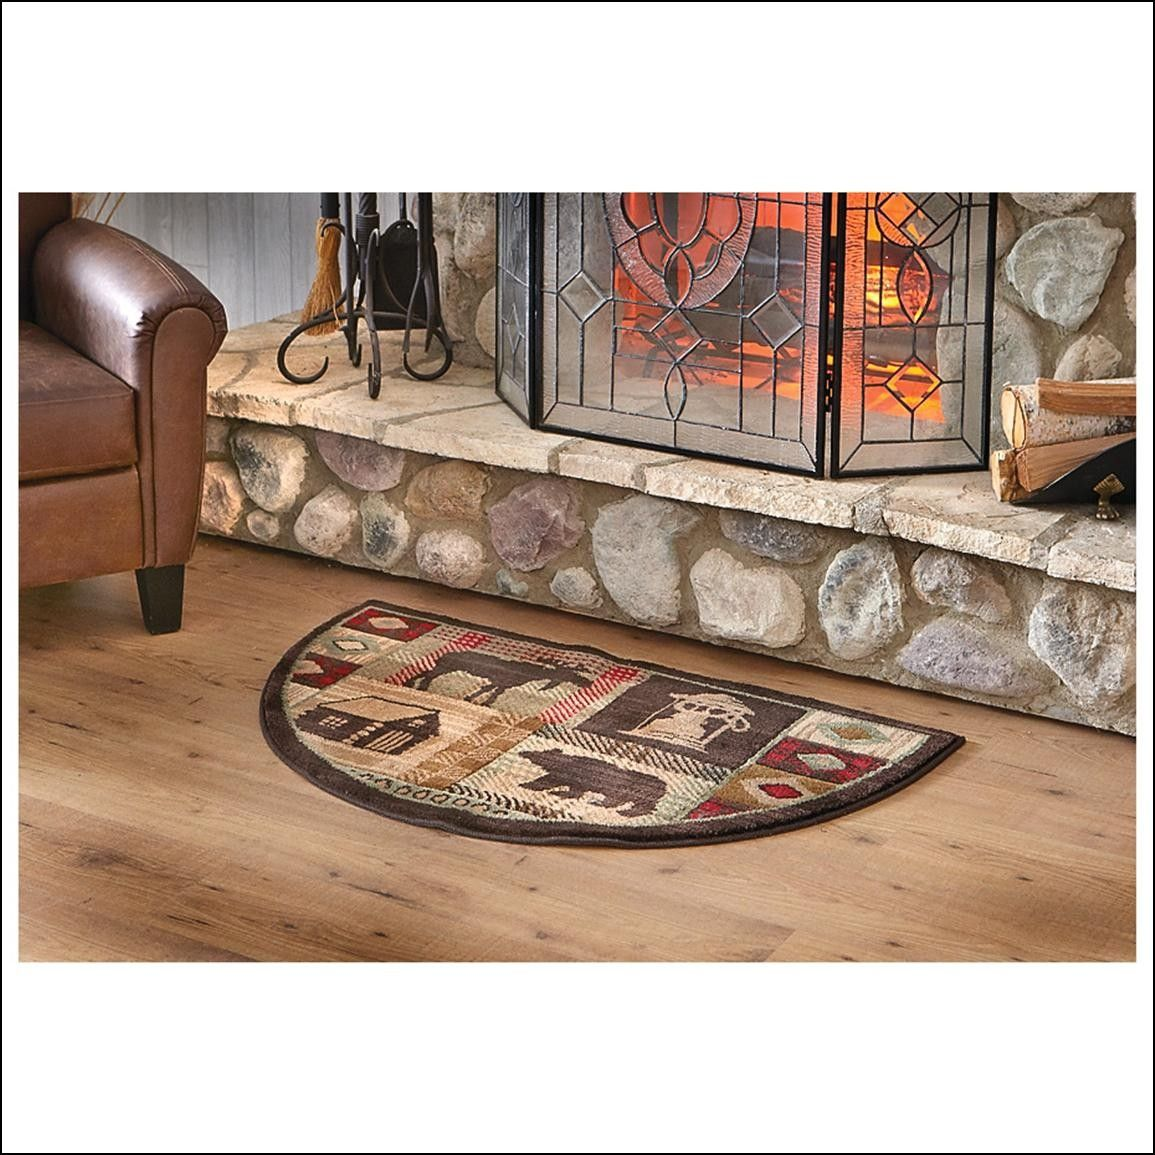 Fire Ant Hearth Rugs